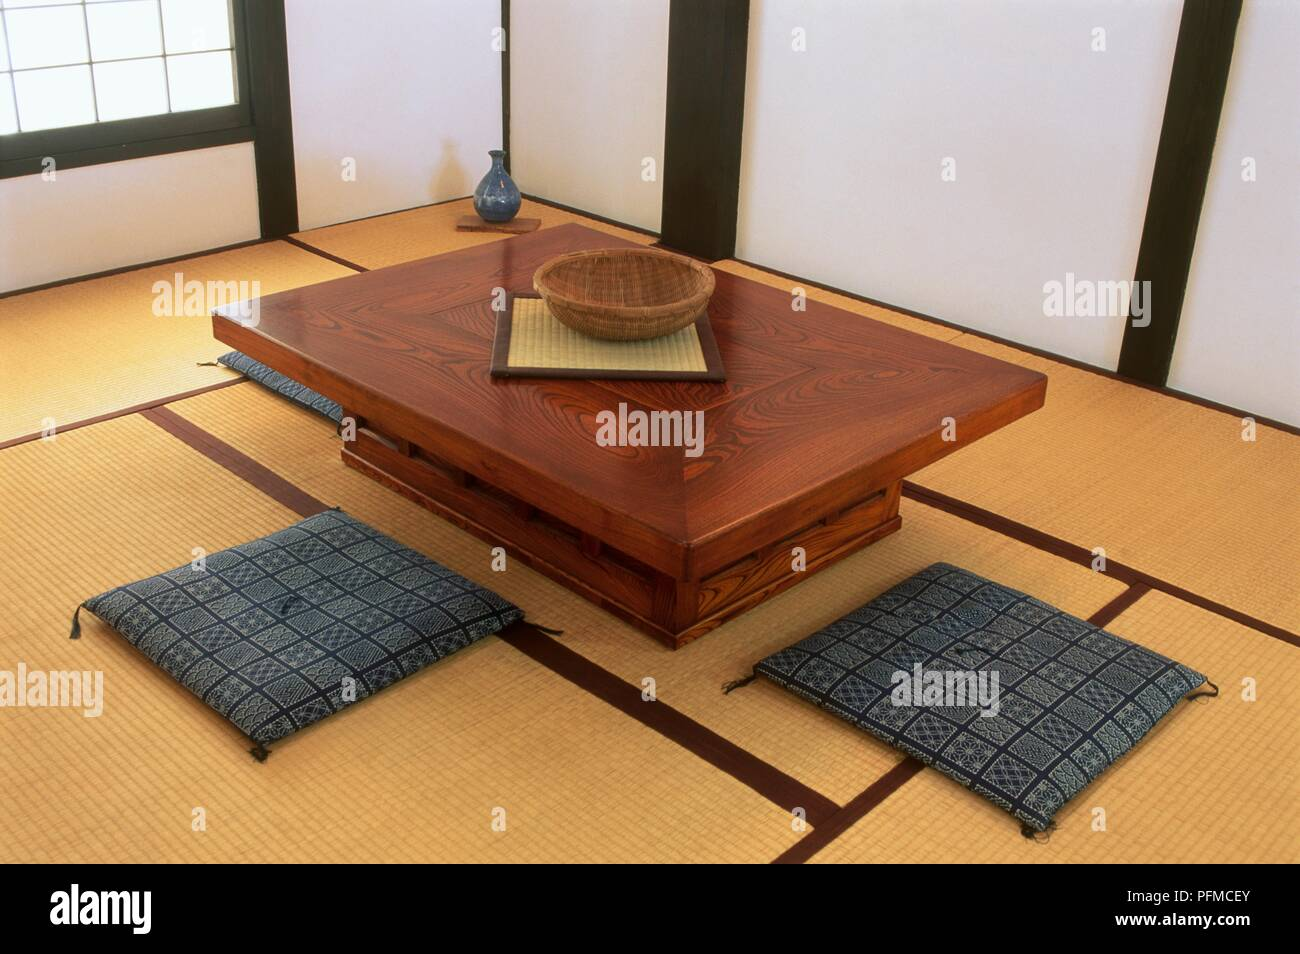 Japanese Kotatsu Table With Two Cushions On The Floor Stock Photo